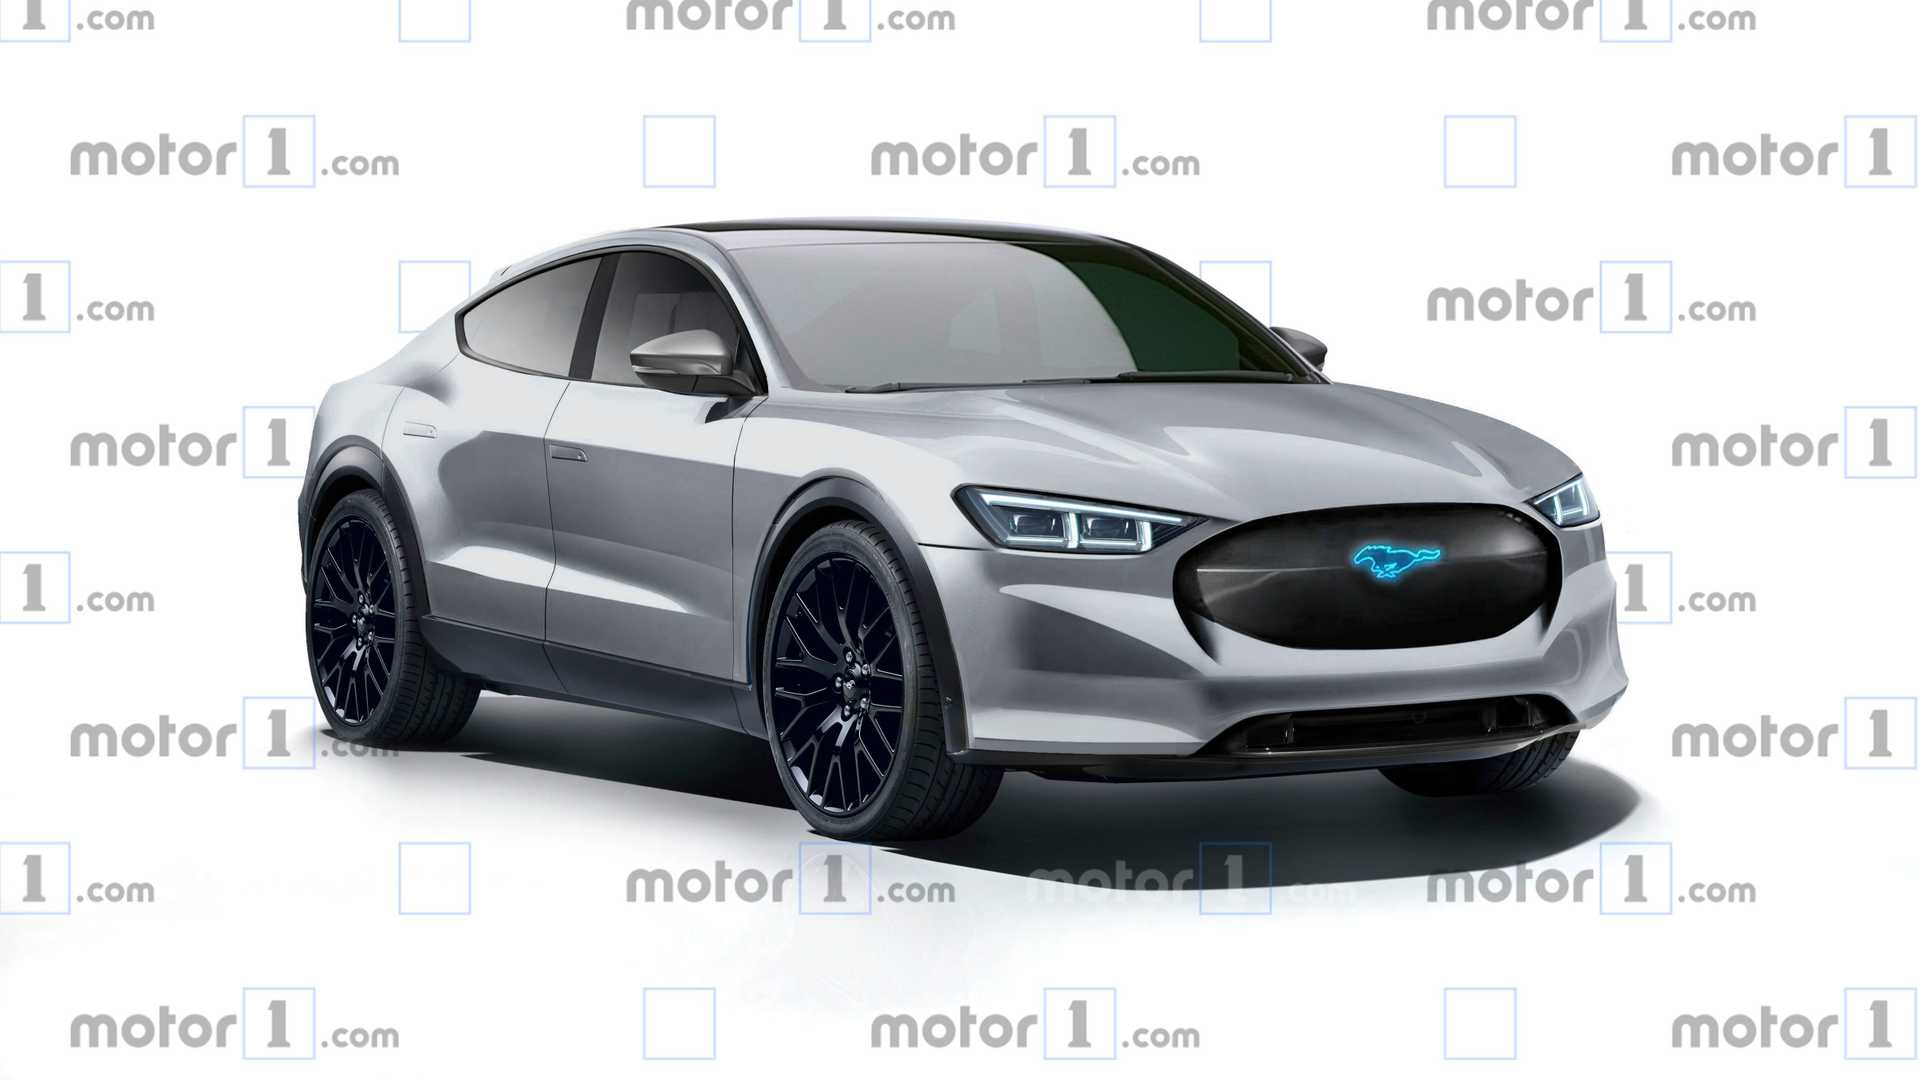 2021 Ford Mach E Is Ford's First Electric SUV >> New Details Emerge On Ford Mustang Based Electric Crossover